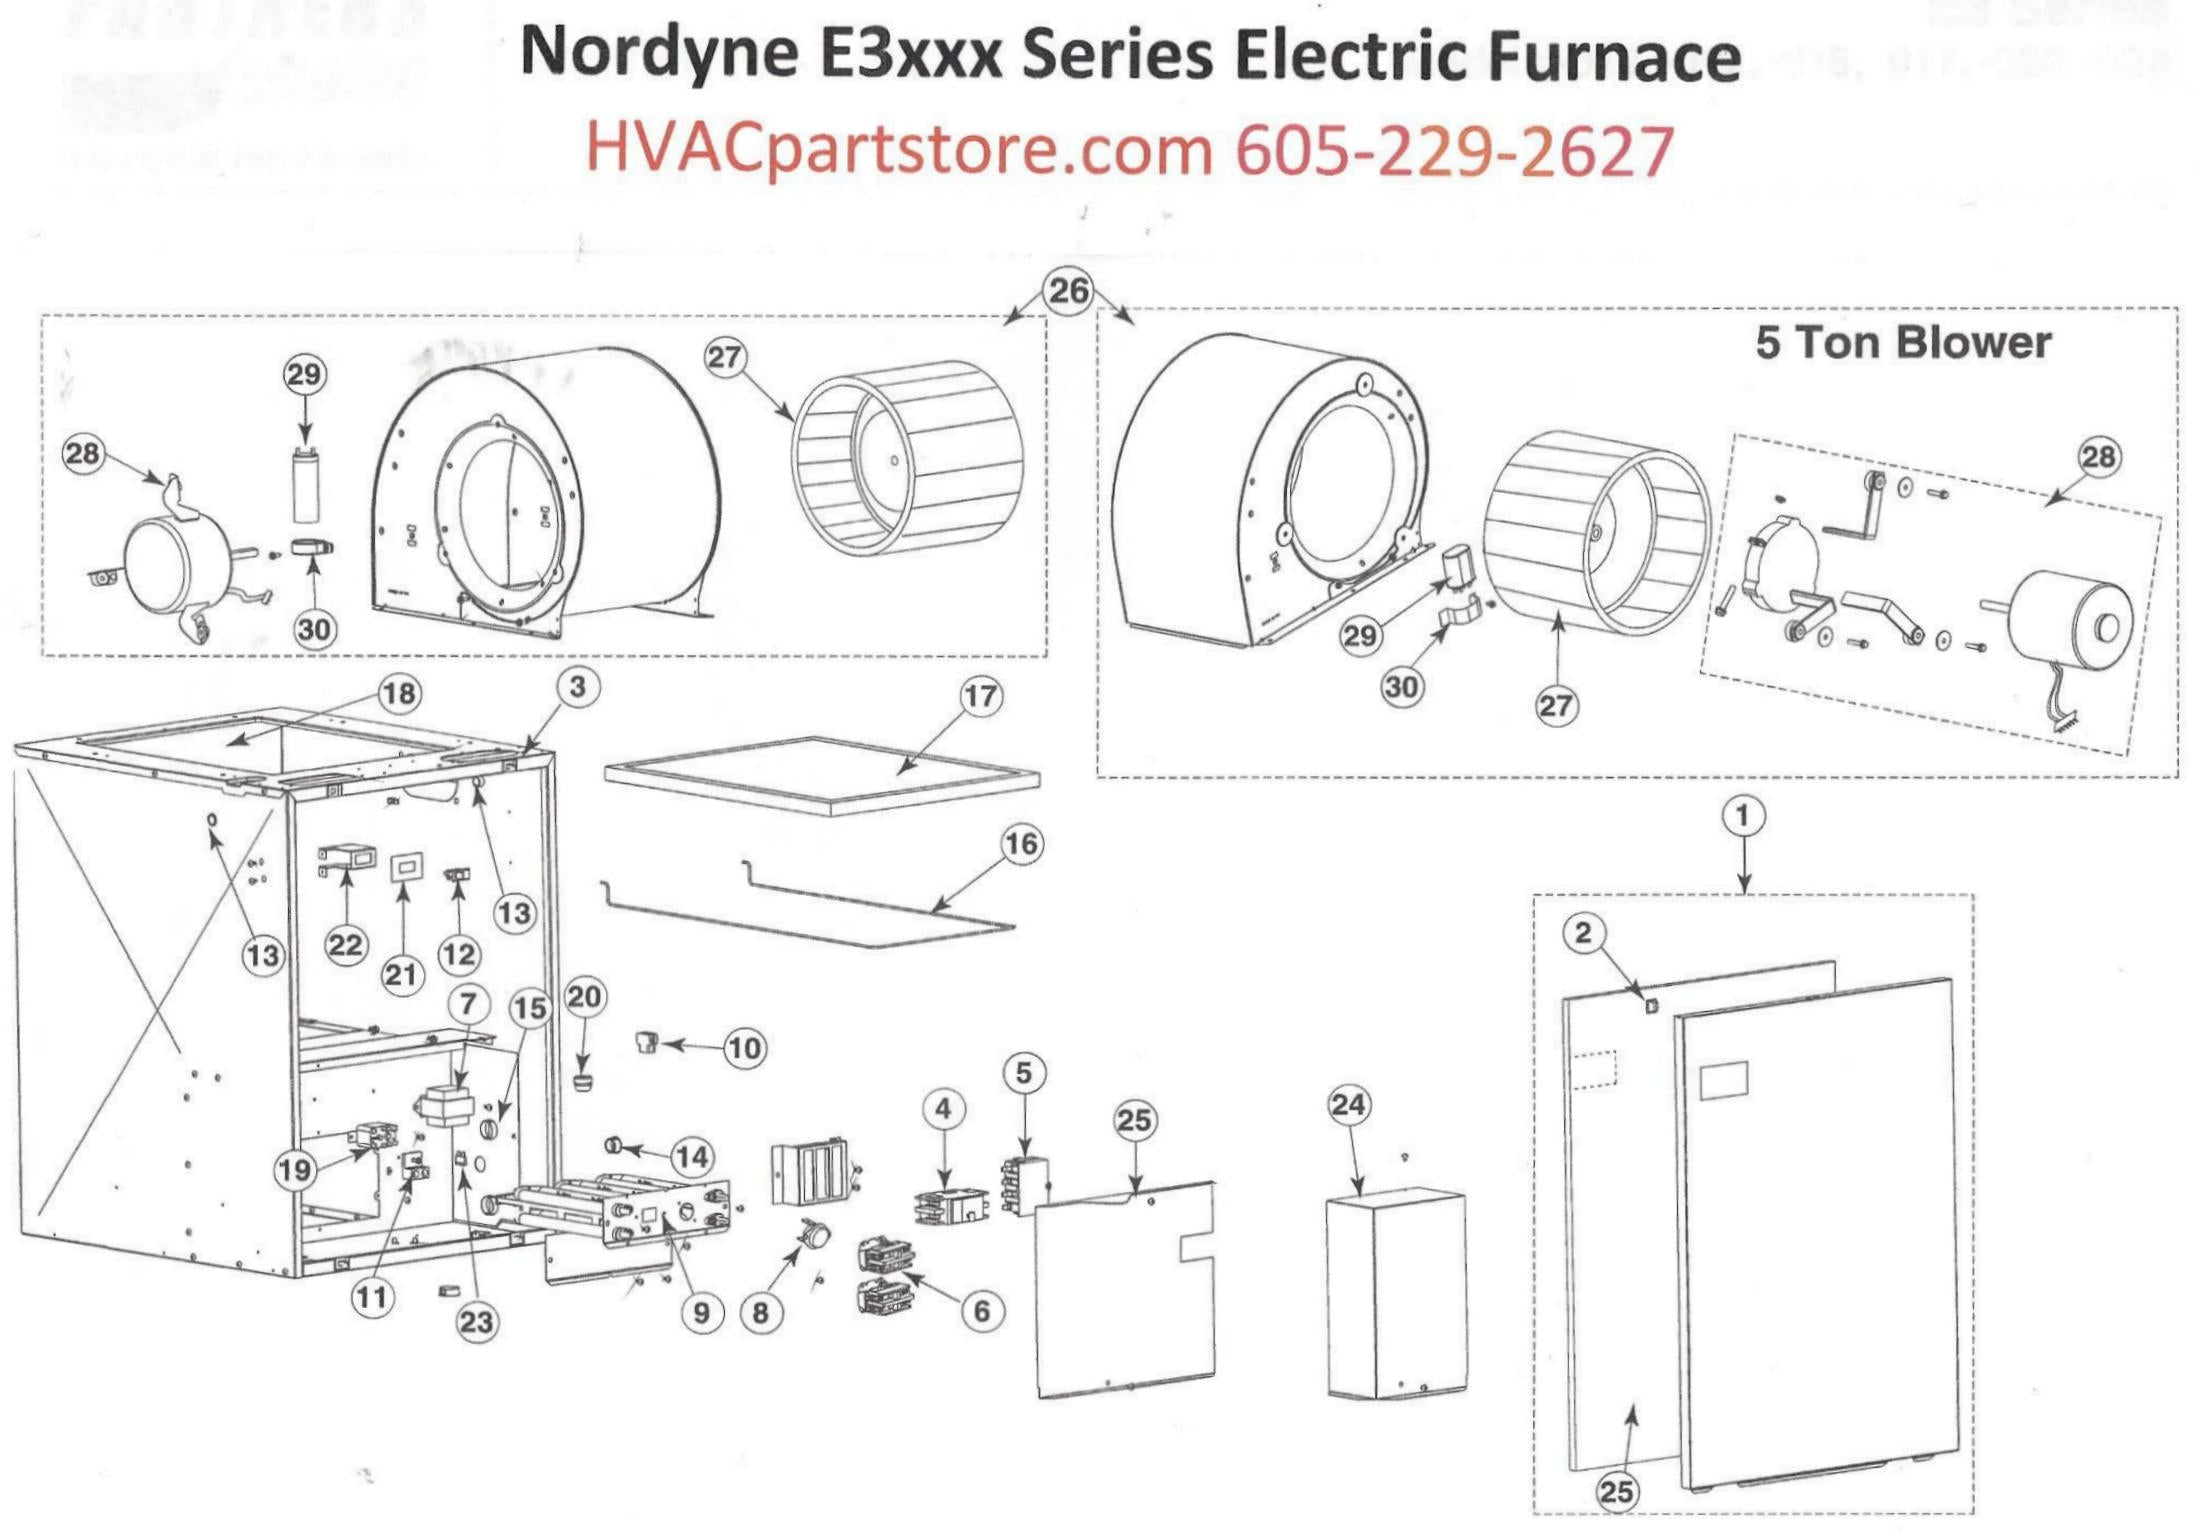 What Is Some Information About The Nordyne Electric